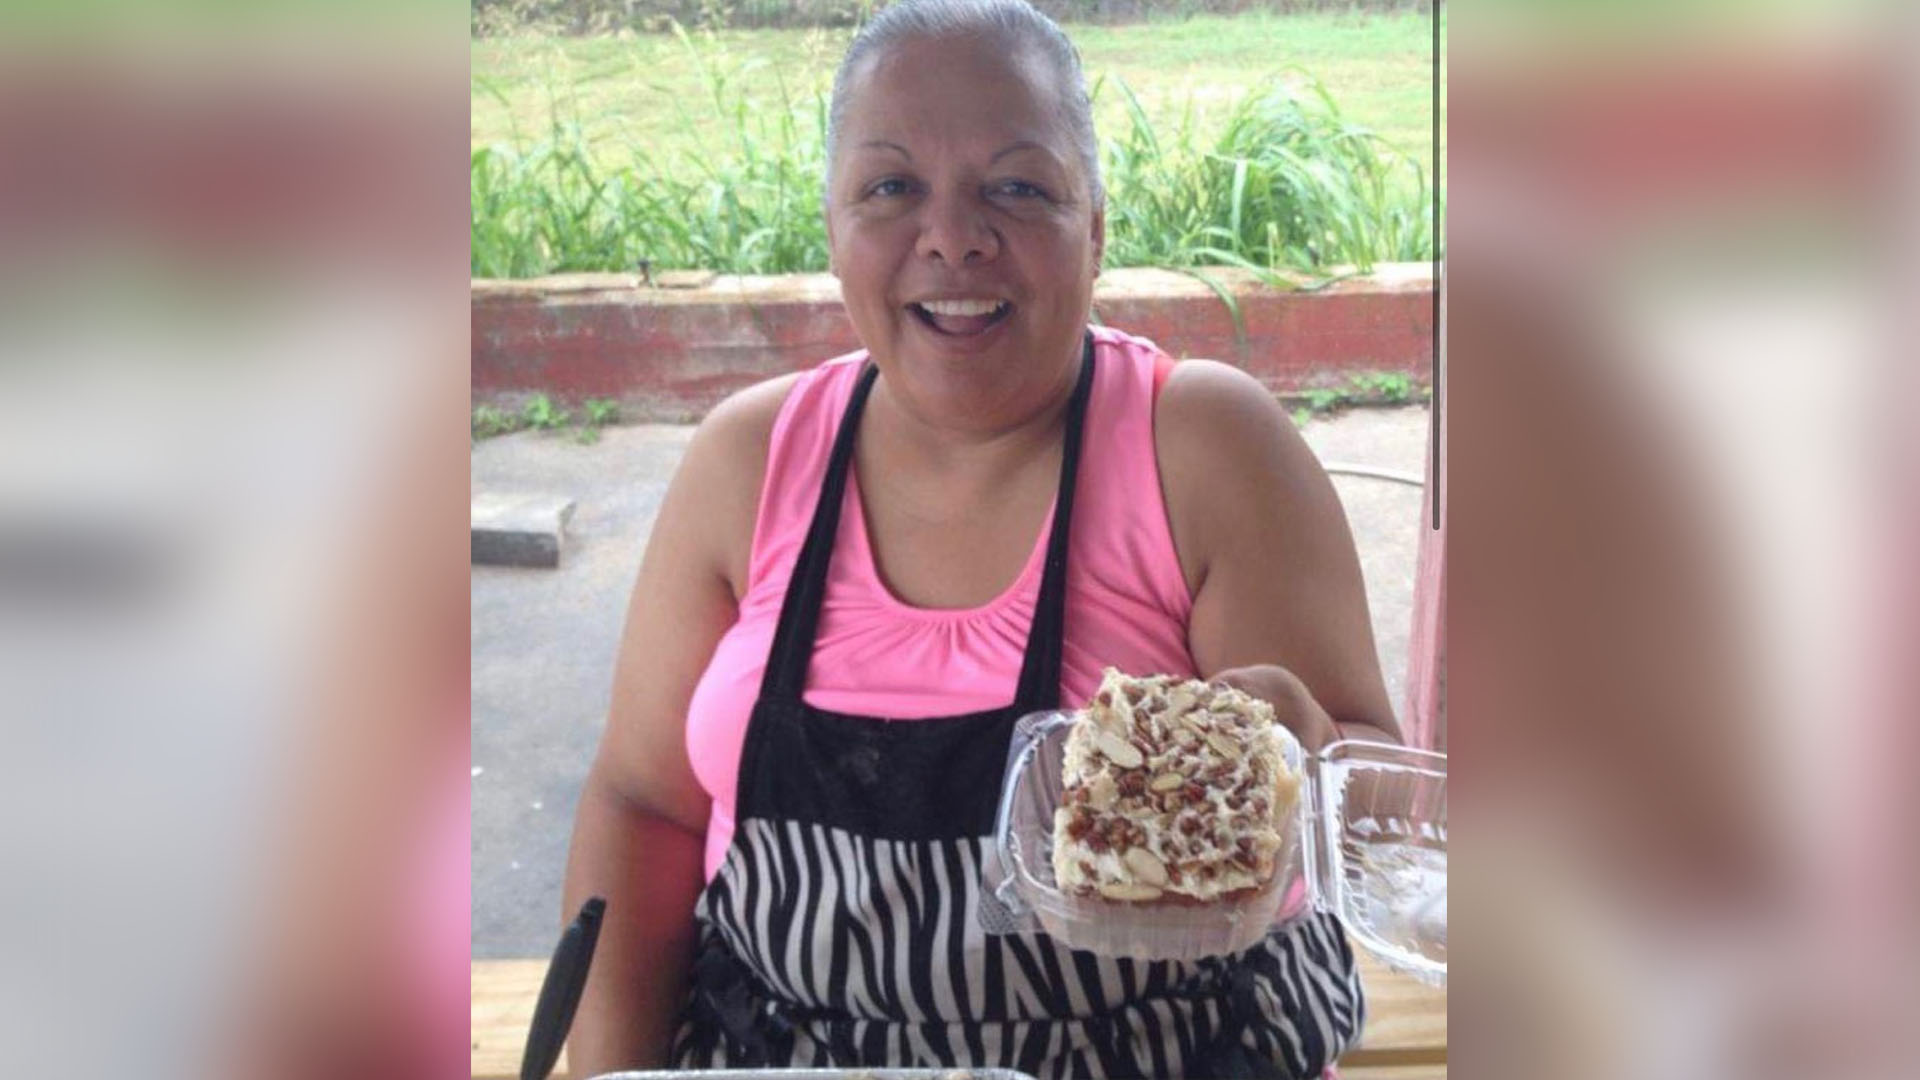 55-year-old Yolanda DeLeon died on Tuesday, July 20, 2021 from complications related to COVID-19. (Courtesy: Kerry Fossler)